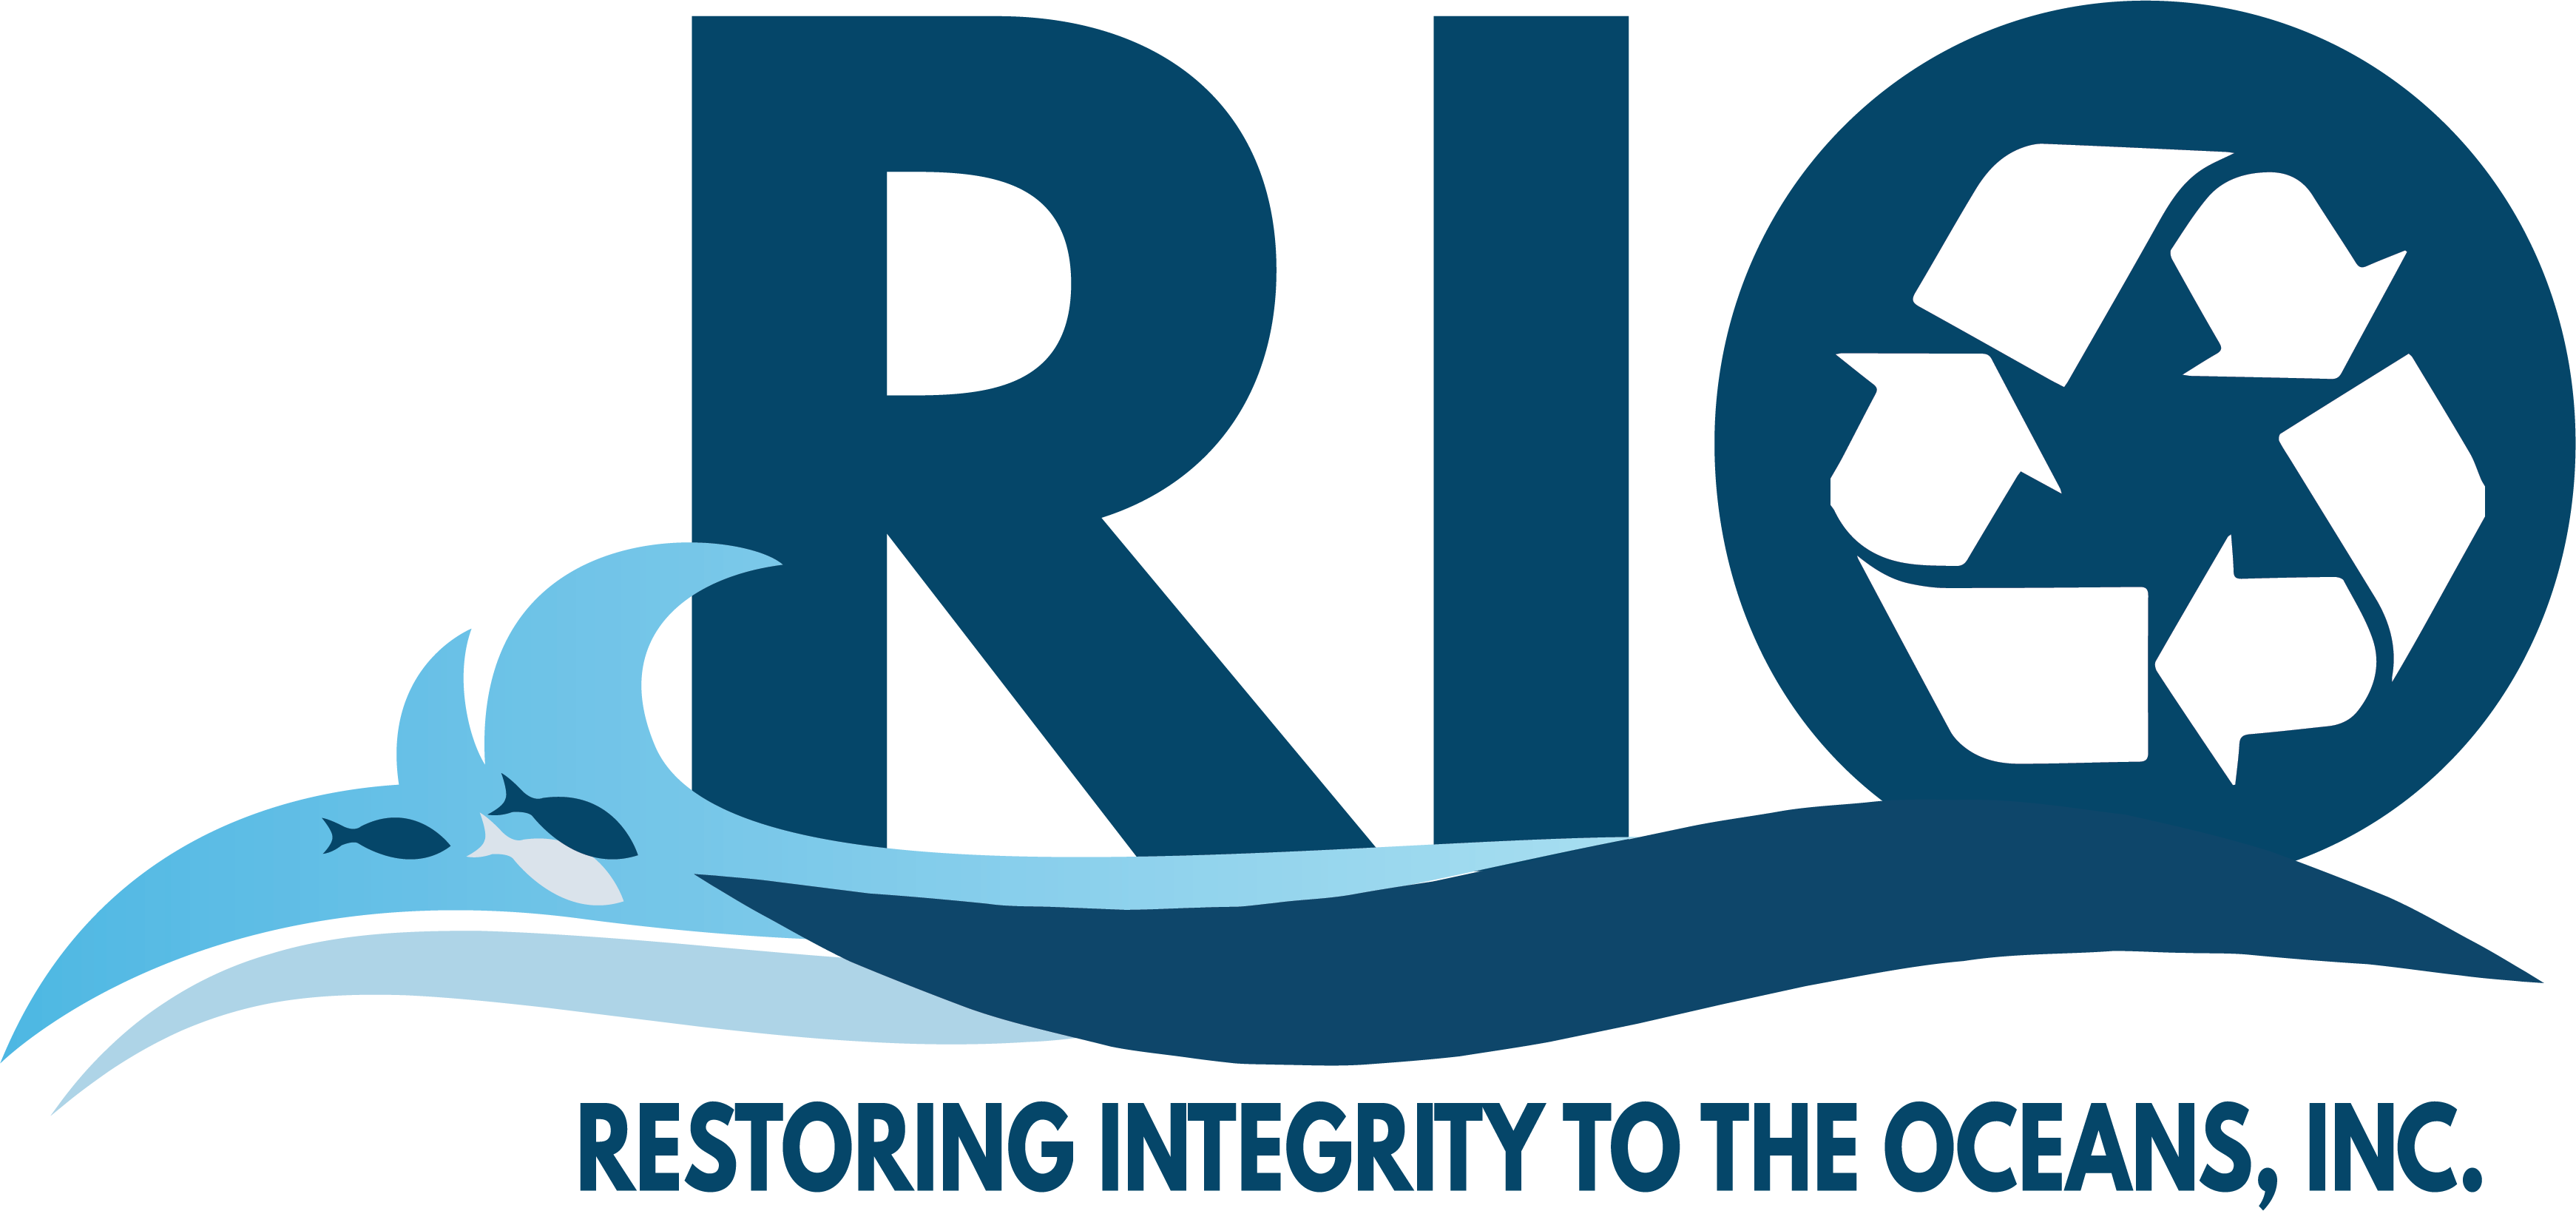 Restoring Integrity to the Oceans